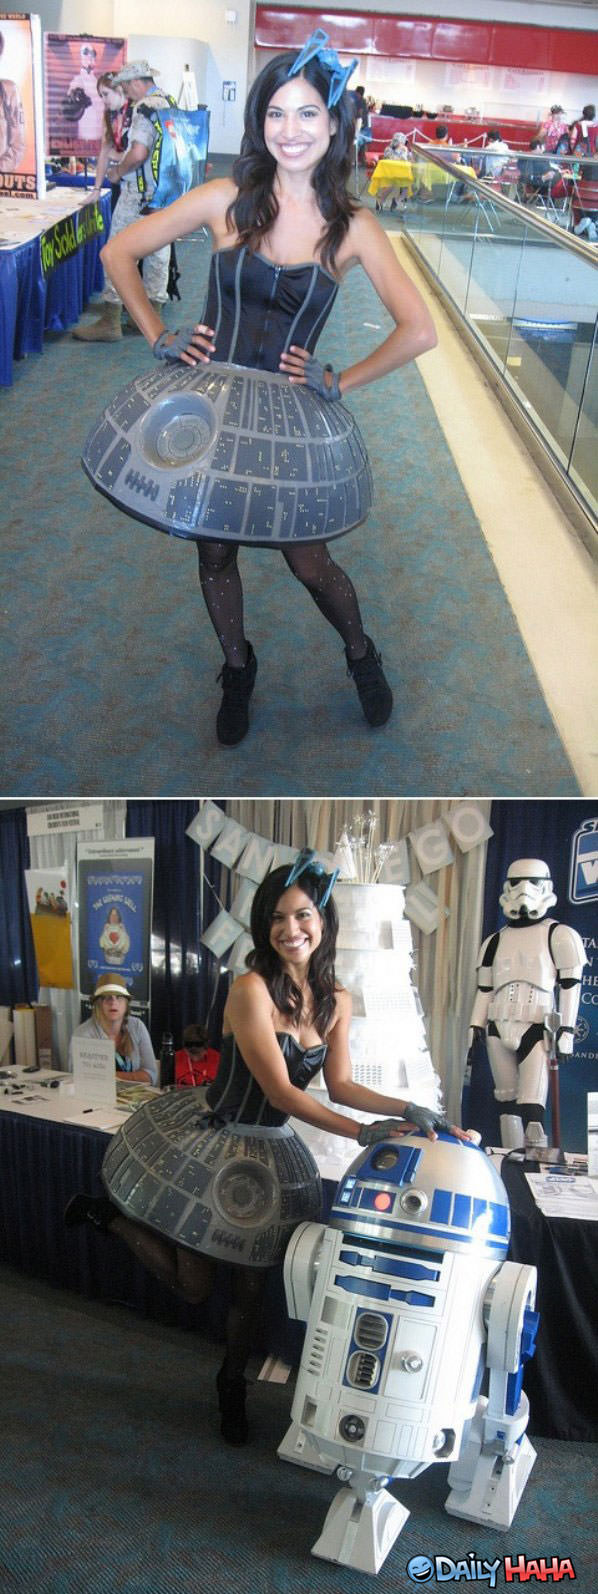 Death Star funny picture